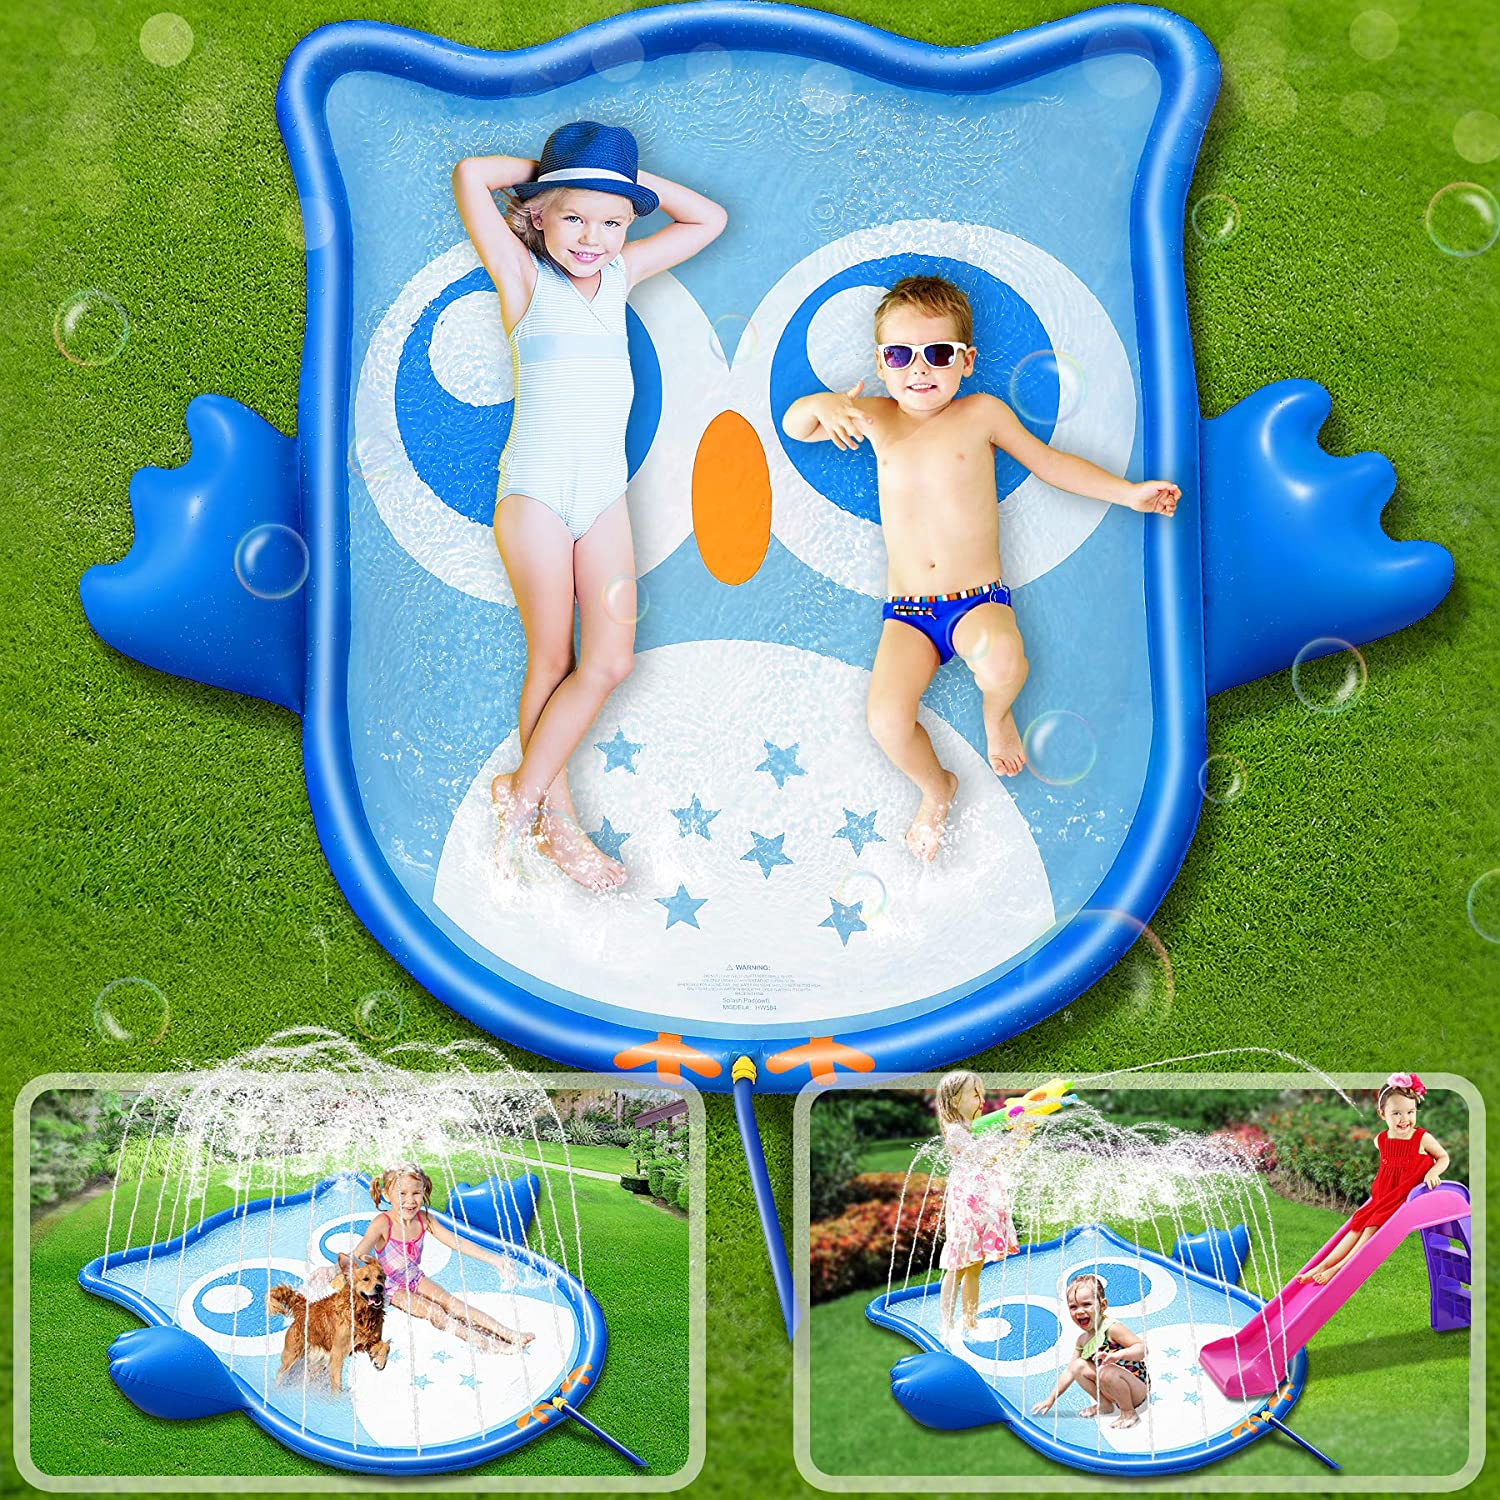 ROYI Sprinkler for Kids, 70''Backyard Blue Owl Fountain Play Mat for Babies Toddlers and Boys Girls Summer Garden Beach Party Water Splash Fun Toys Sprinkler Pool for Kids Wading and Learning